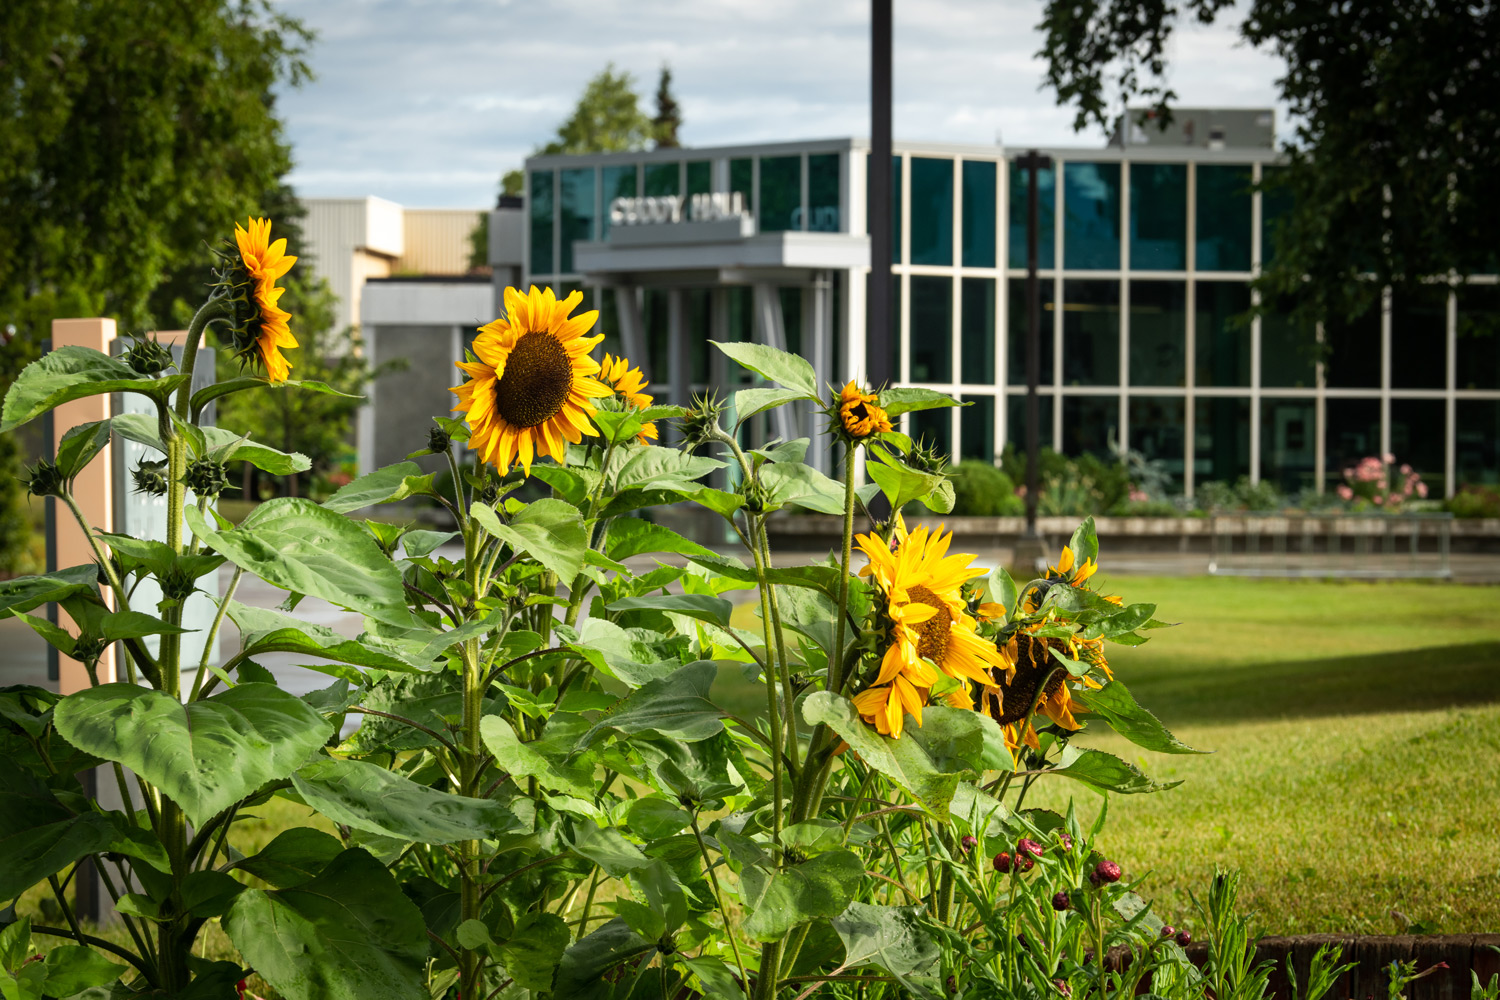 UAA's Lucy Cuddy Hall with sunflowers in the foreground (Photo by James Evans / UAA)